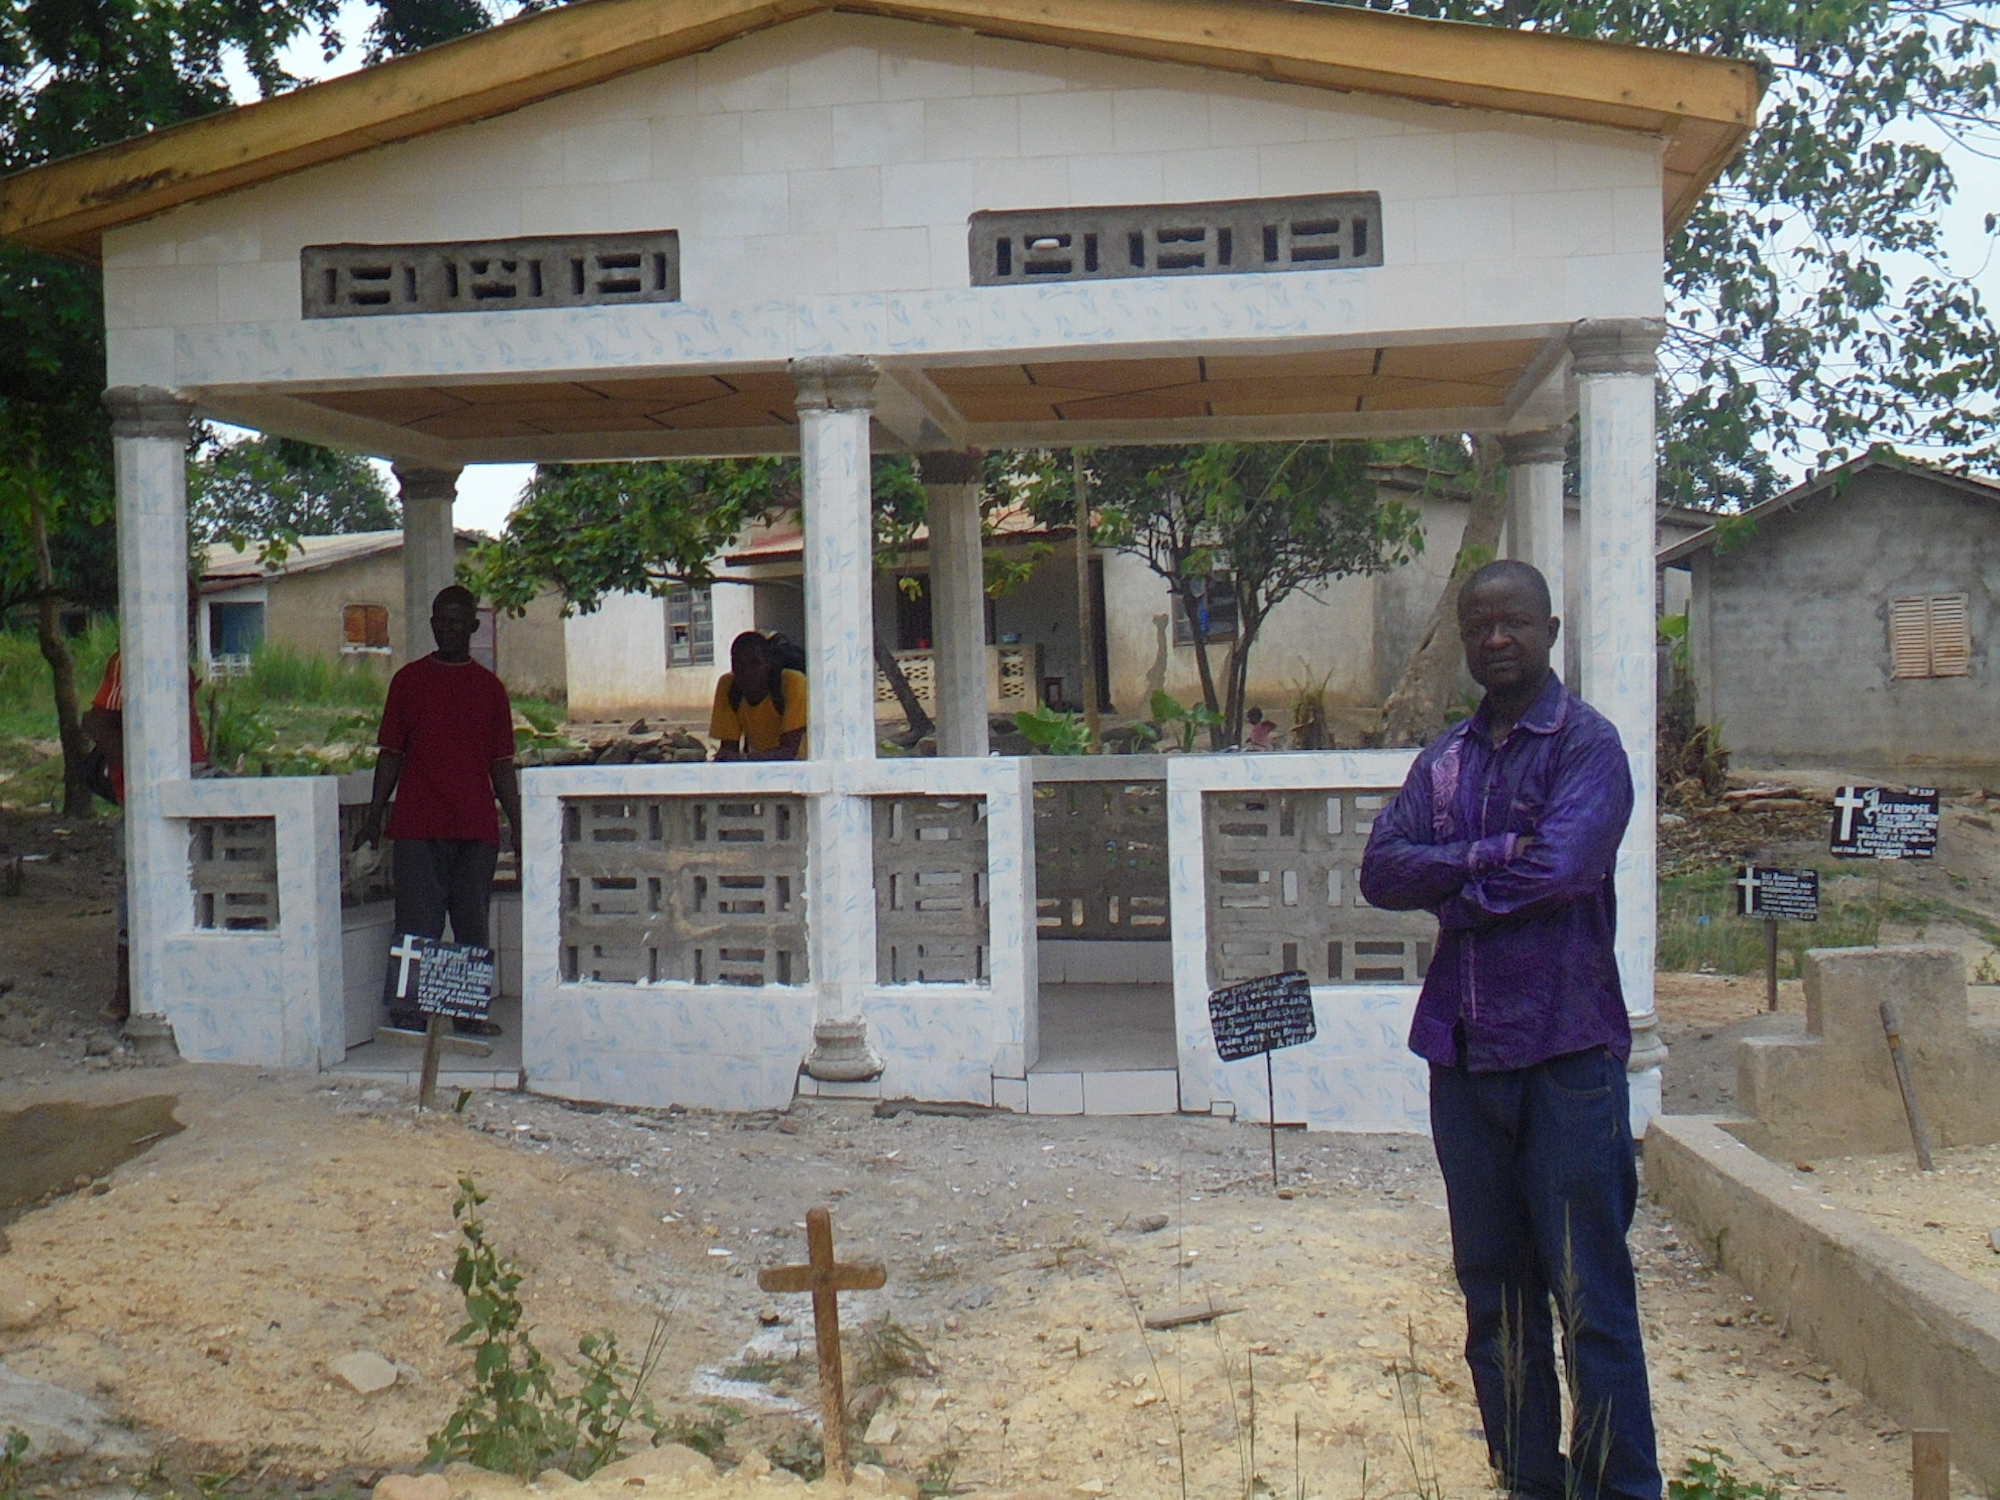 Maurice Ouendeno (on the right) stands outside the memorial sanctuary they built for his father in lieu of having a real burial plot. Guineans, like Maurice, waited more than a year to bury loved ones who had died from Ebola due to the clash between gover